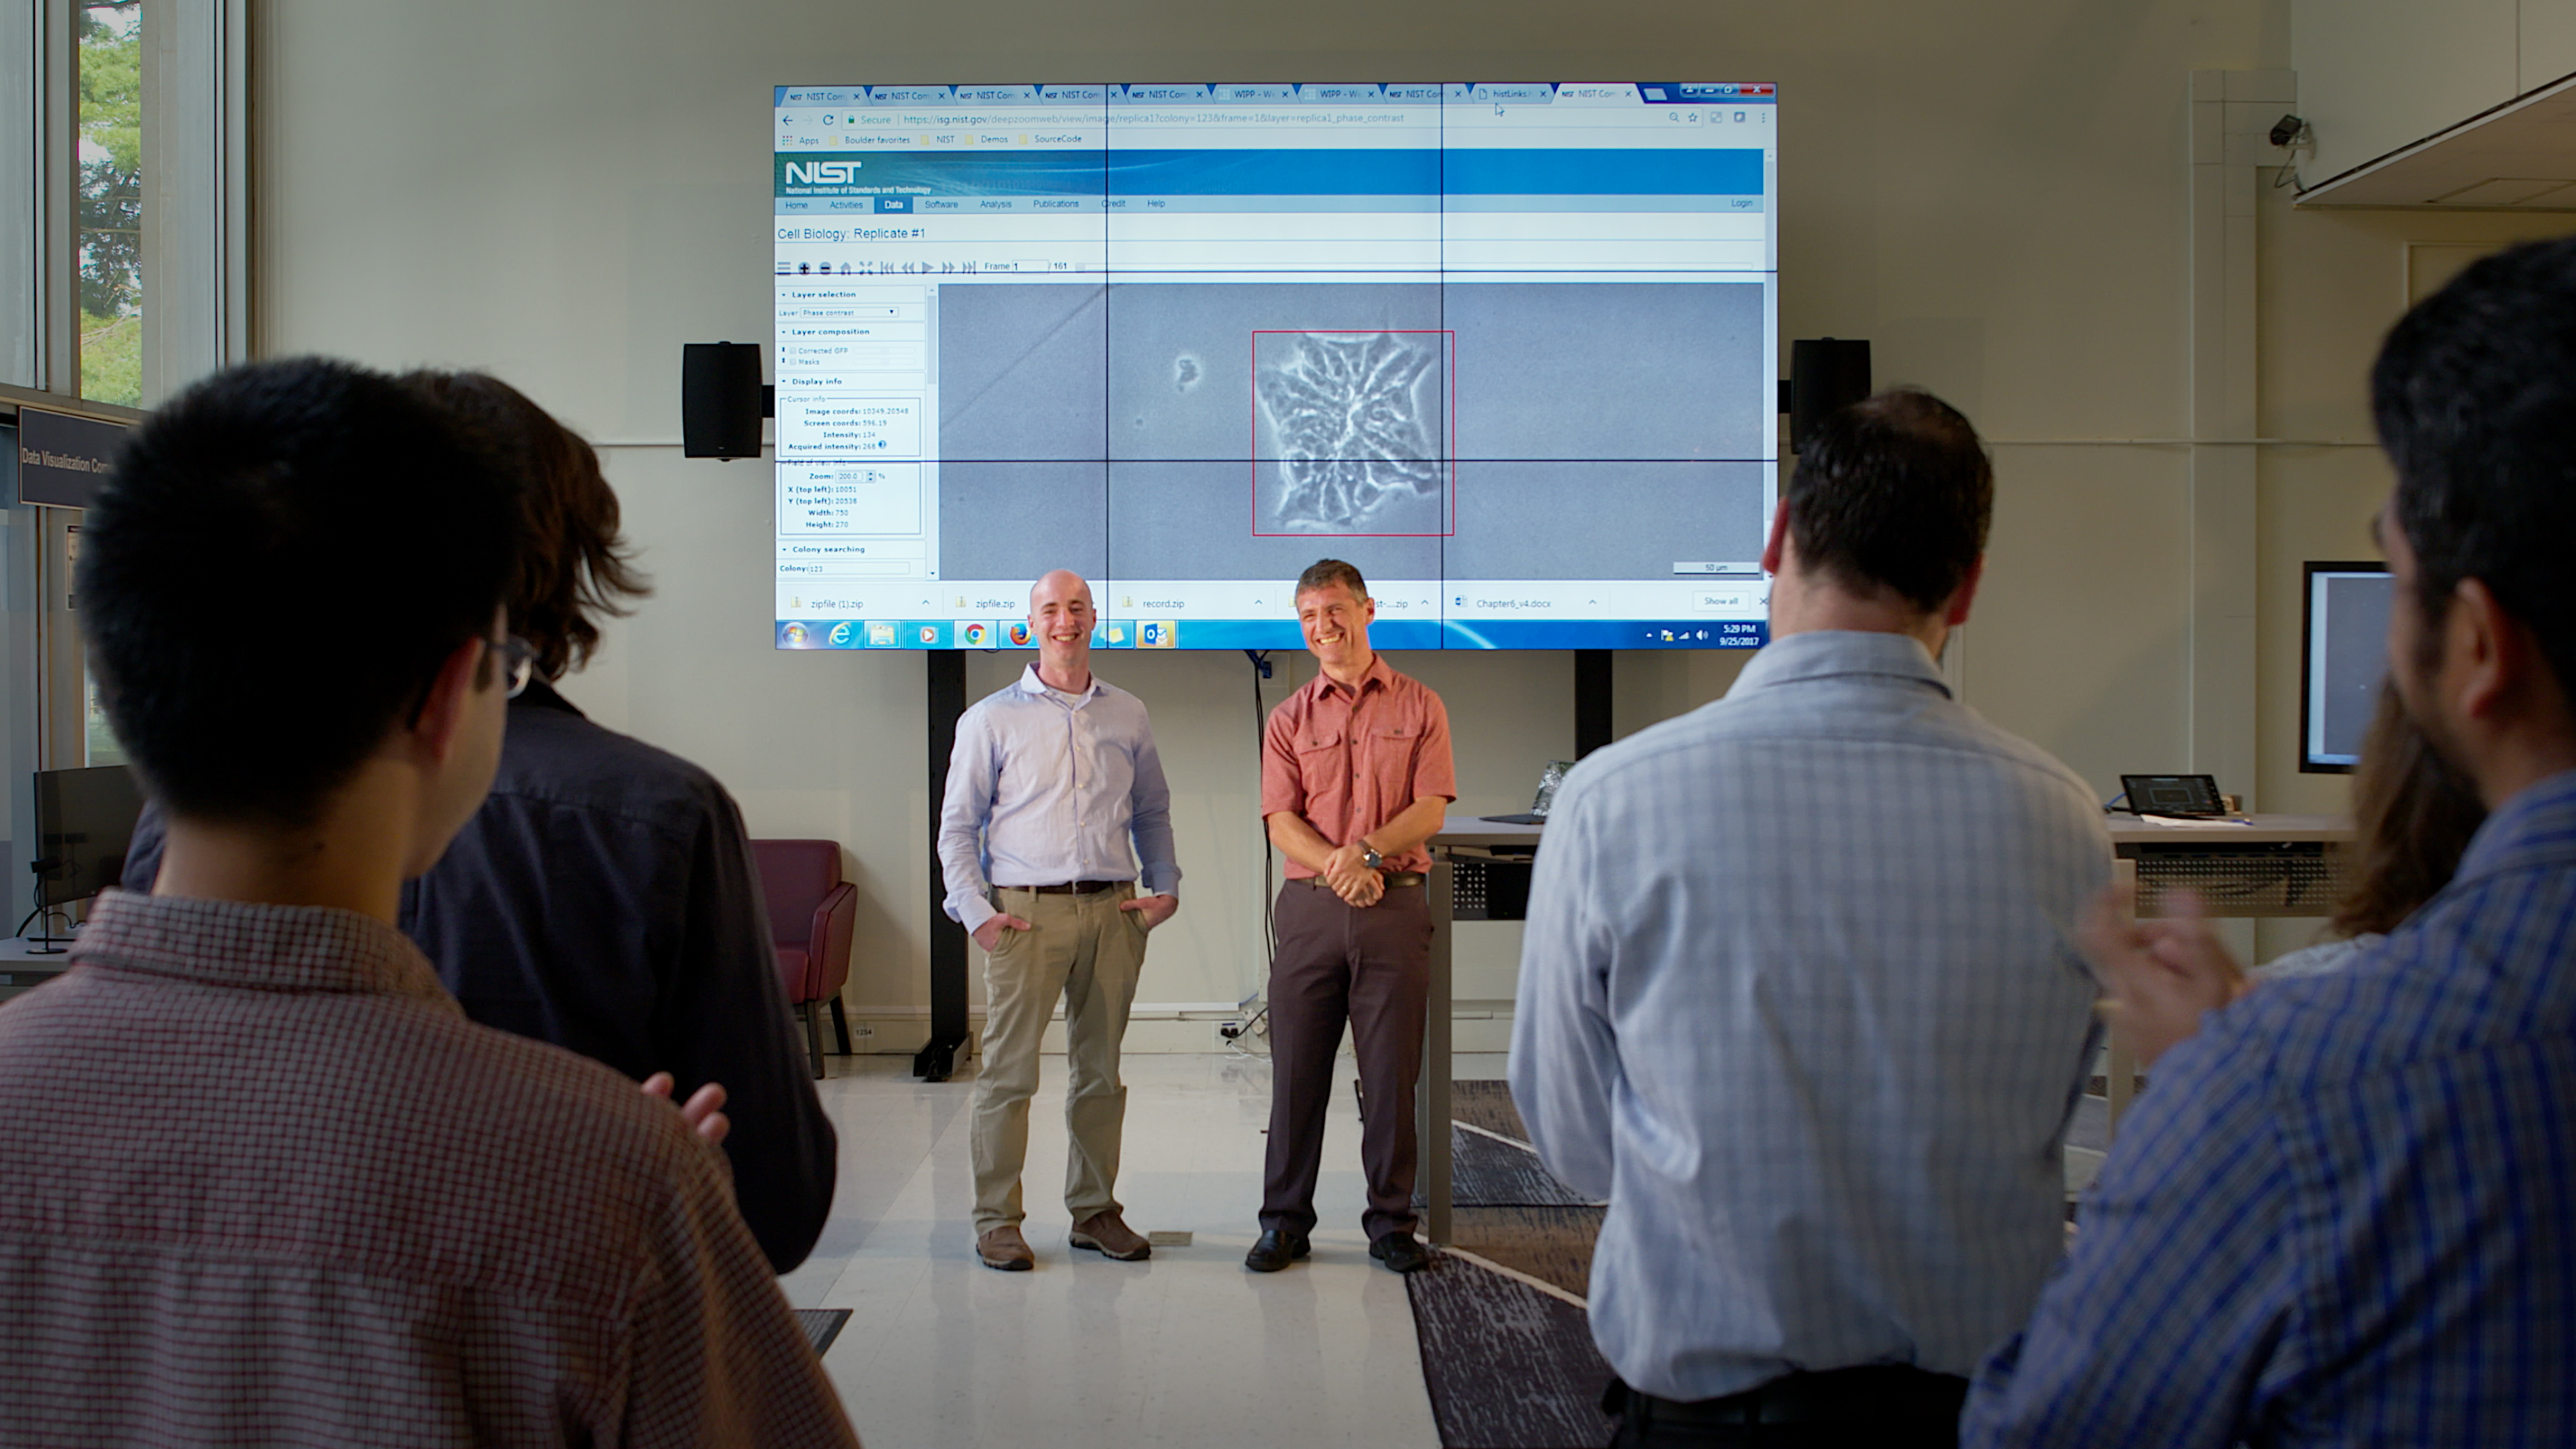 Micheal Halter (on left) and Peter Bacjsy, during a live demonstration of the software.